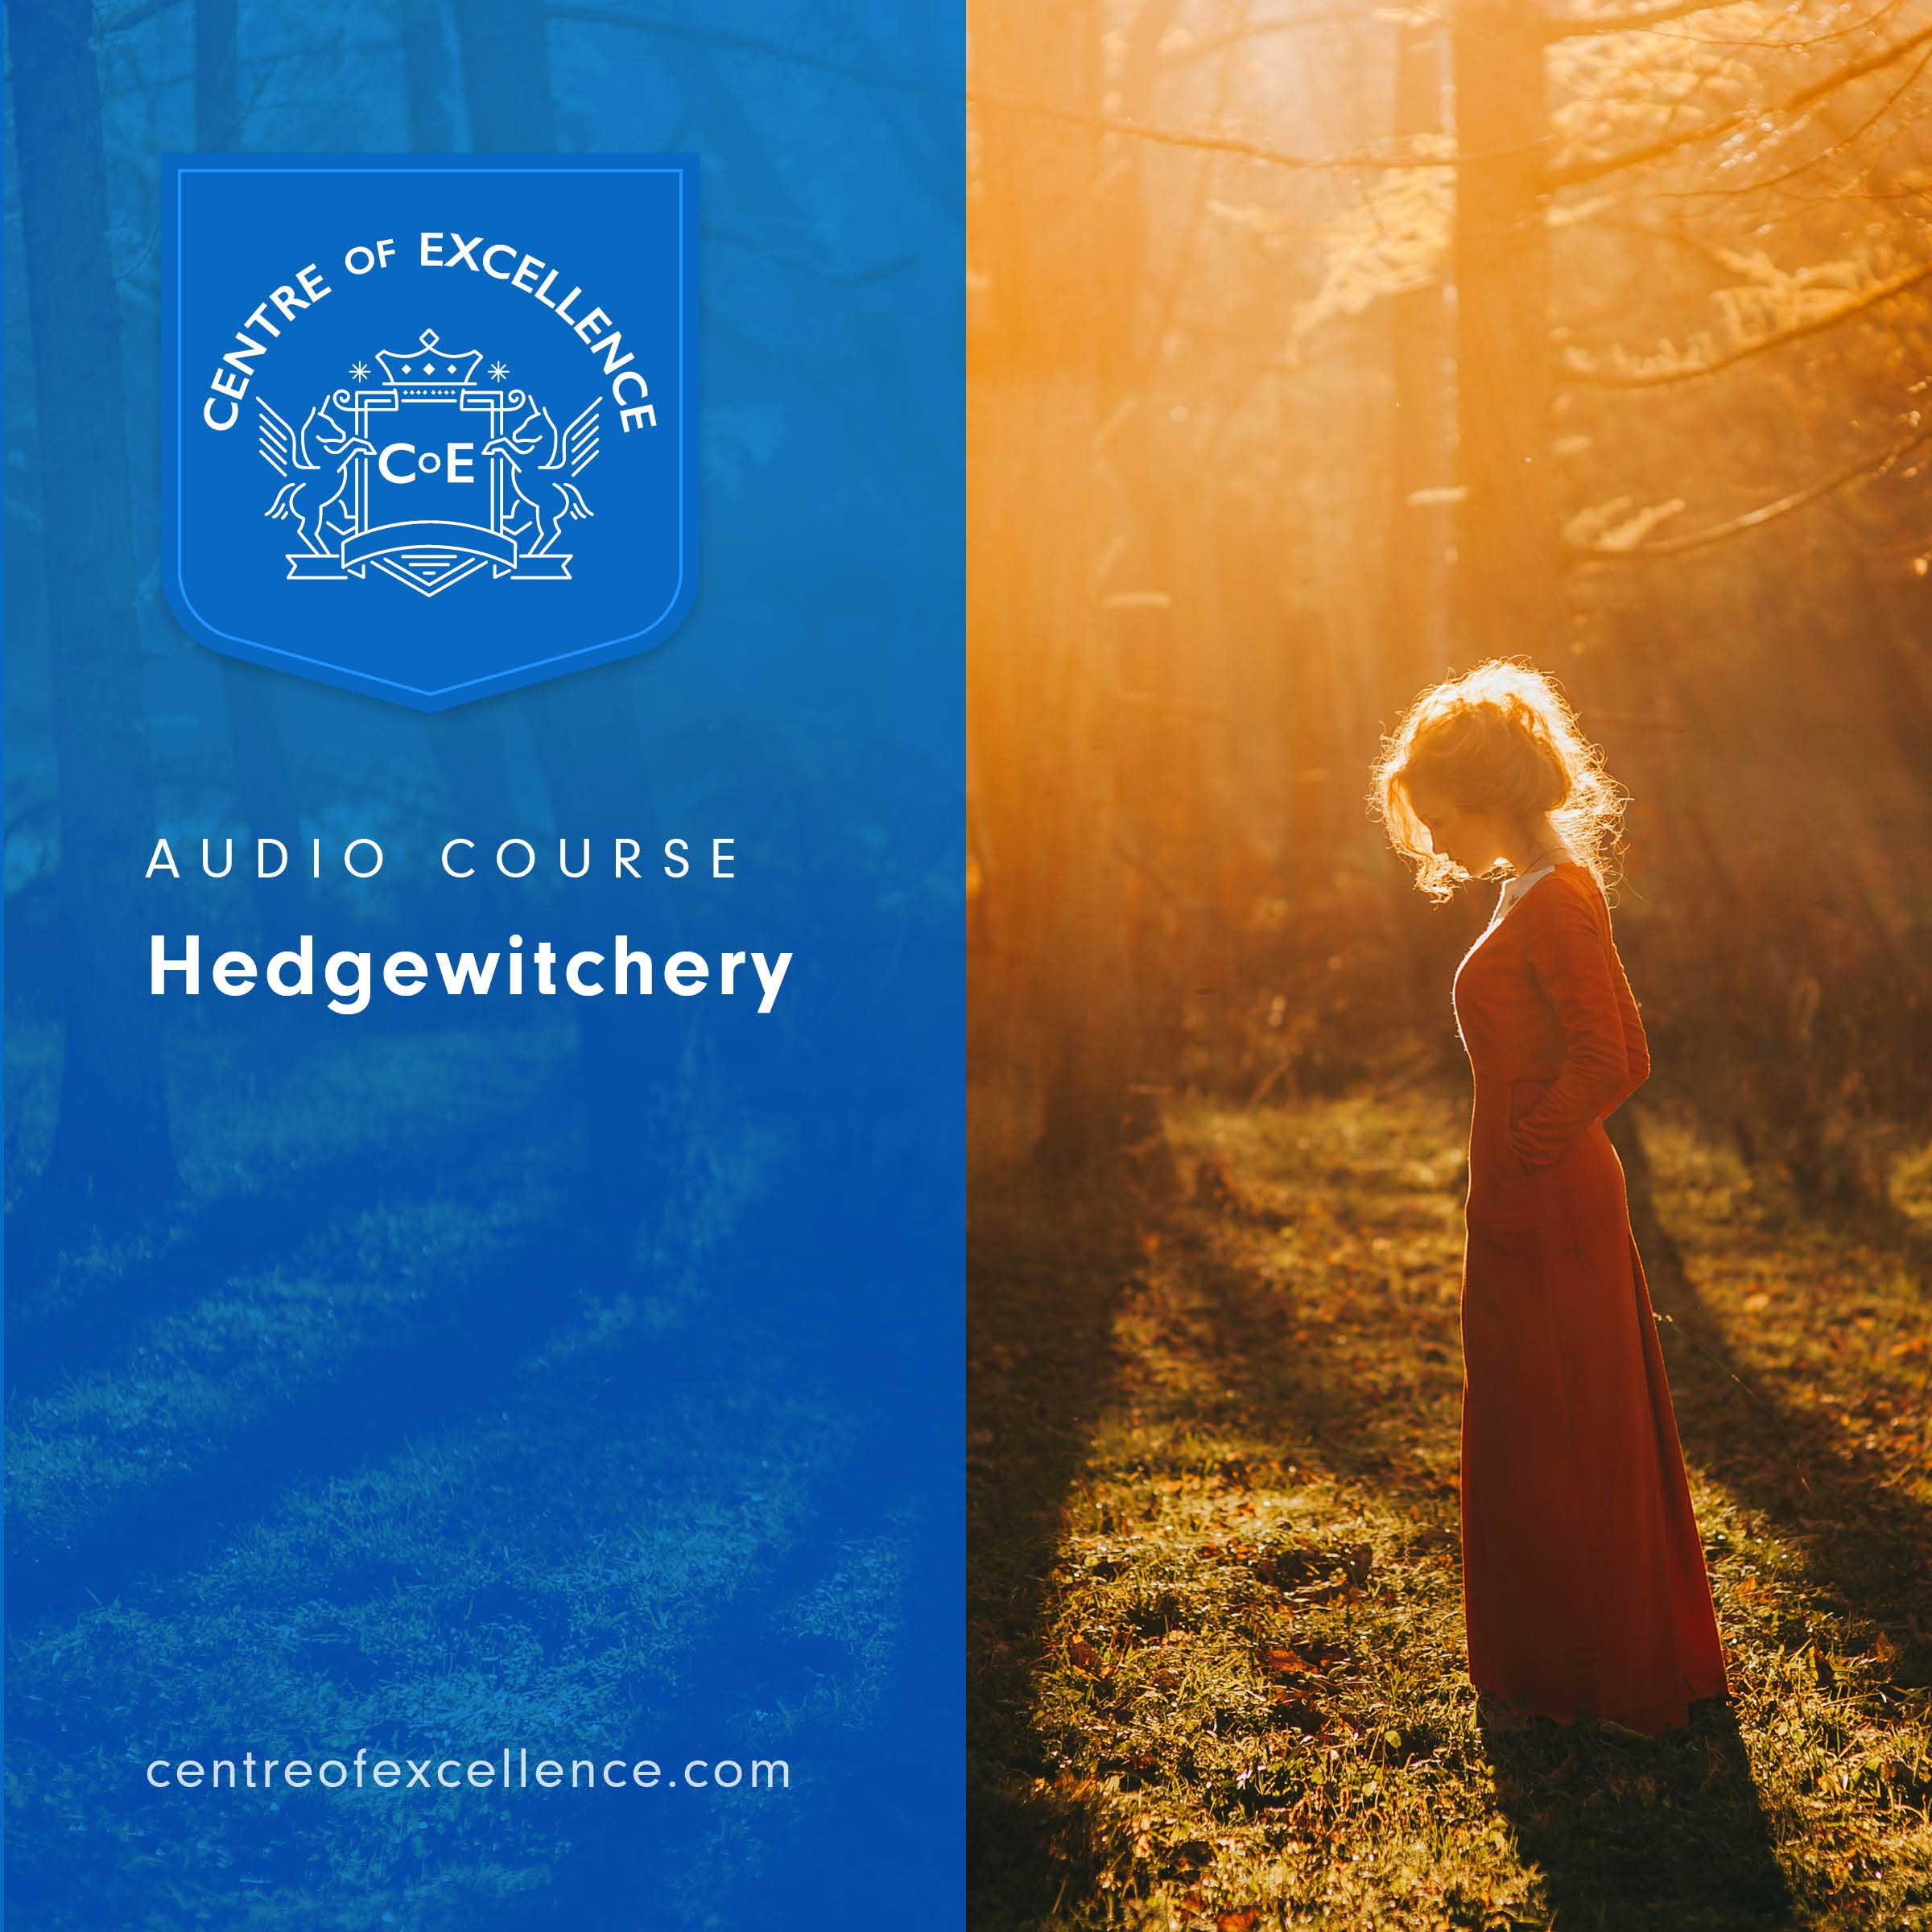 Hedgewitchery Audio Course